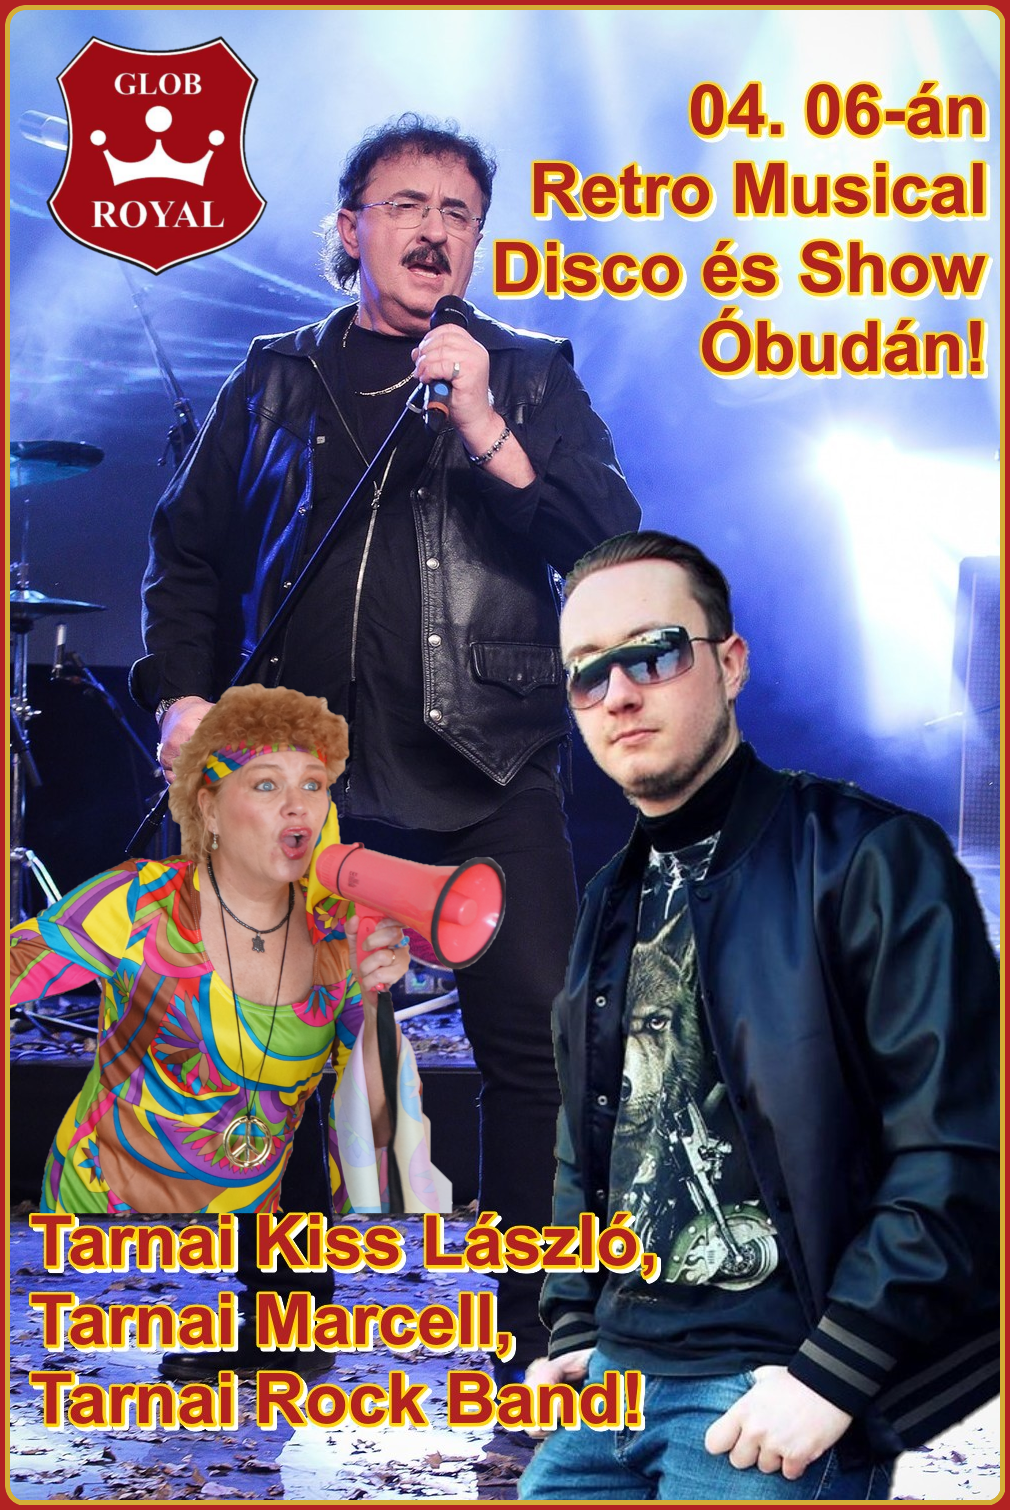 Retro Video Disco Óbudán